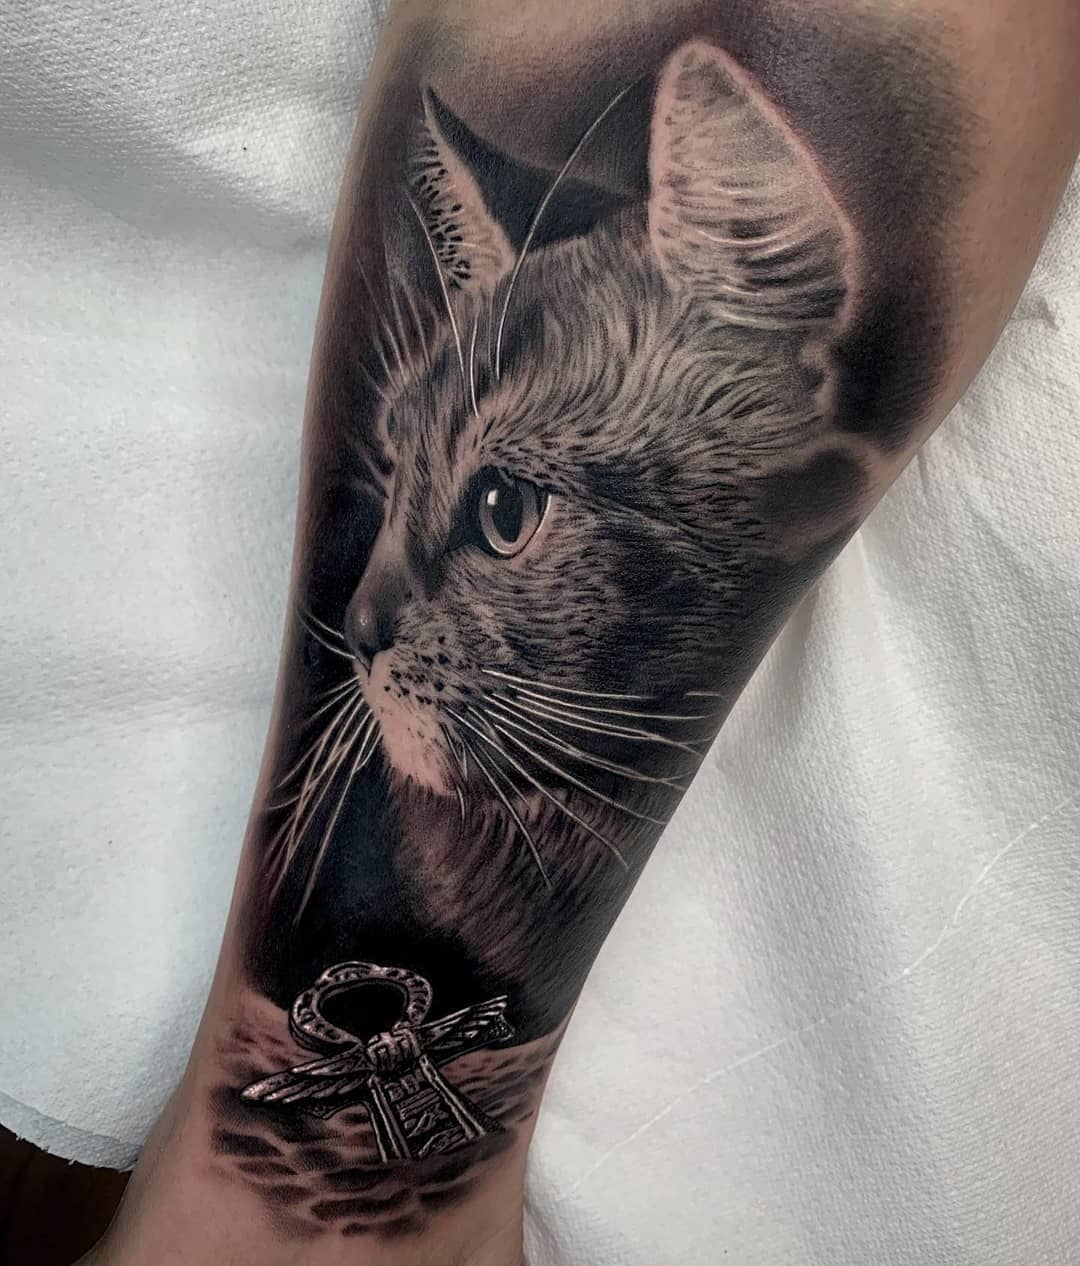 cat-tattoo-meaning